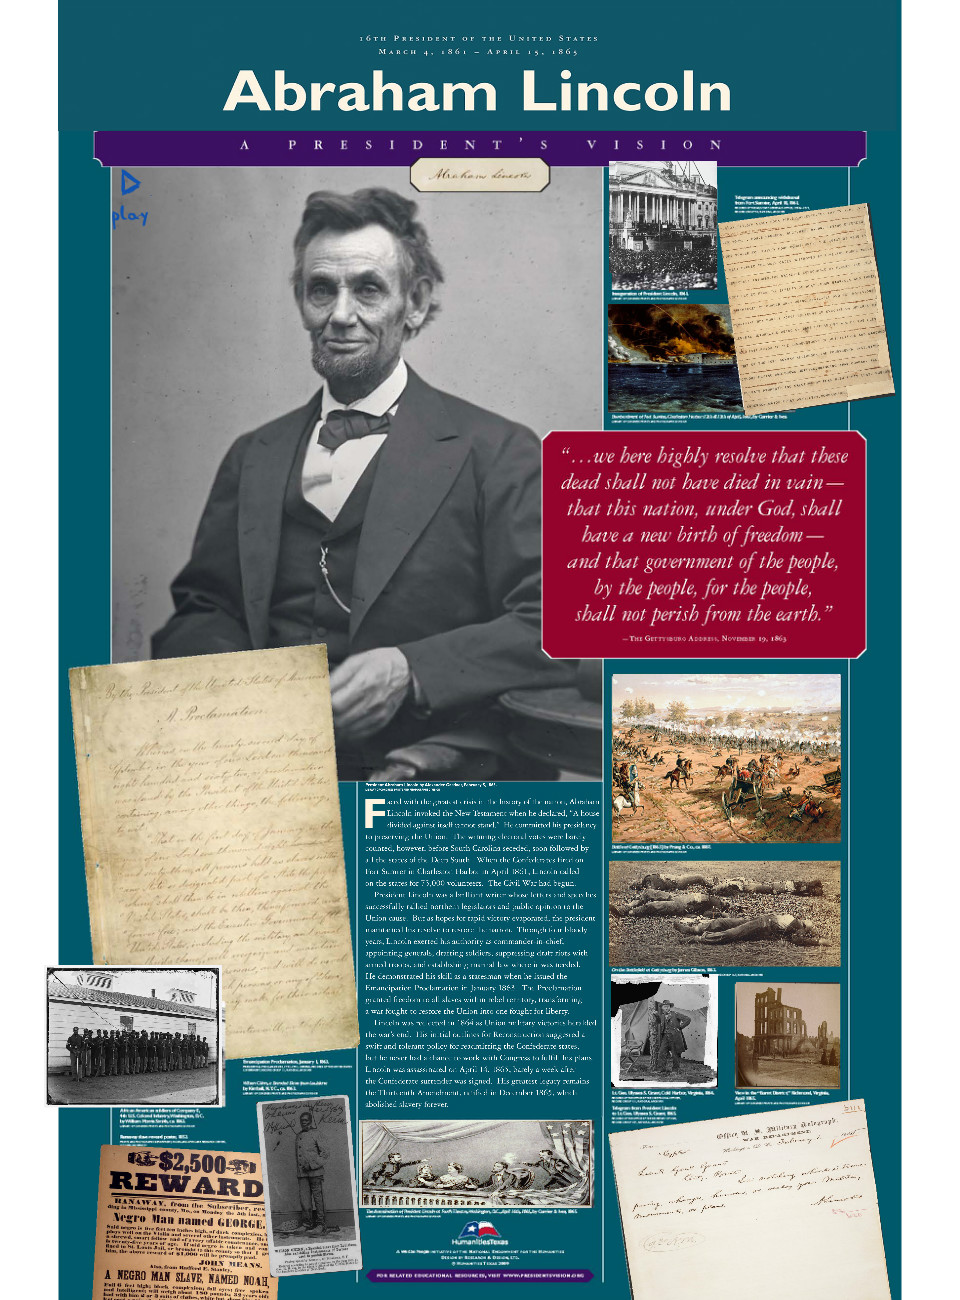 an introduction to the history of lincoln at gettysburg • name three important concepts lincoln laid out in the gettysburg address introduction abraham lincoln presidential library and ments in us history.